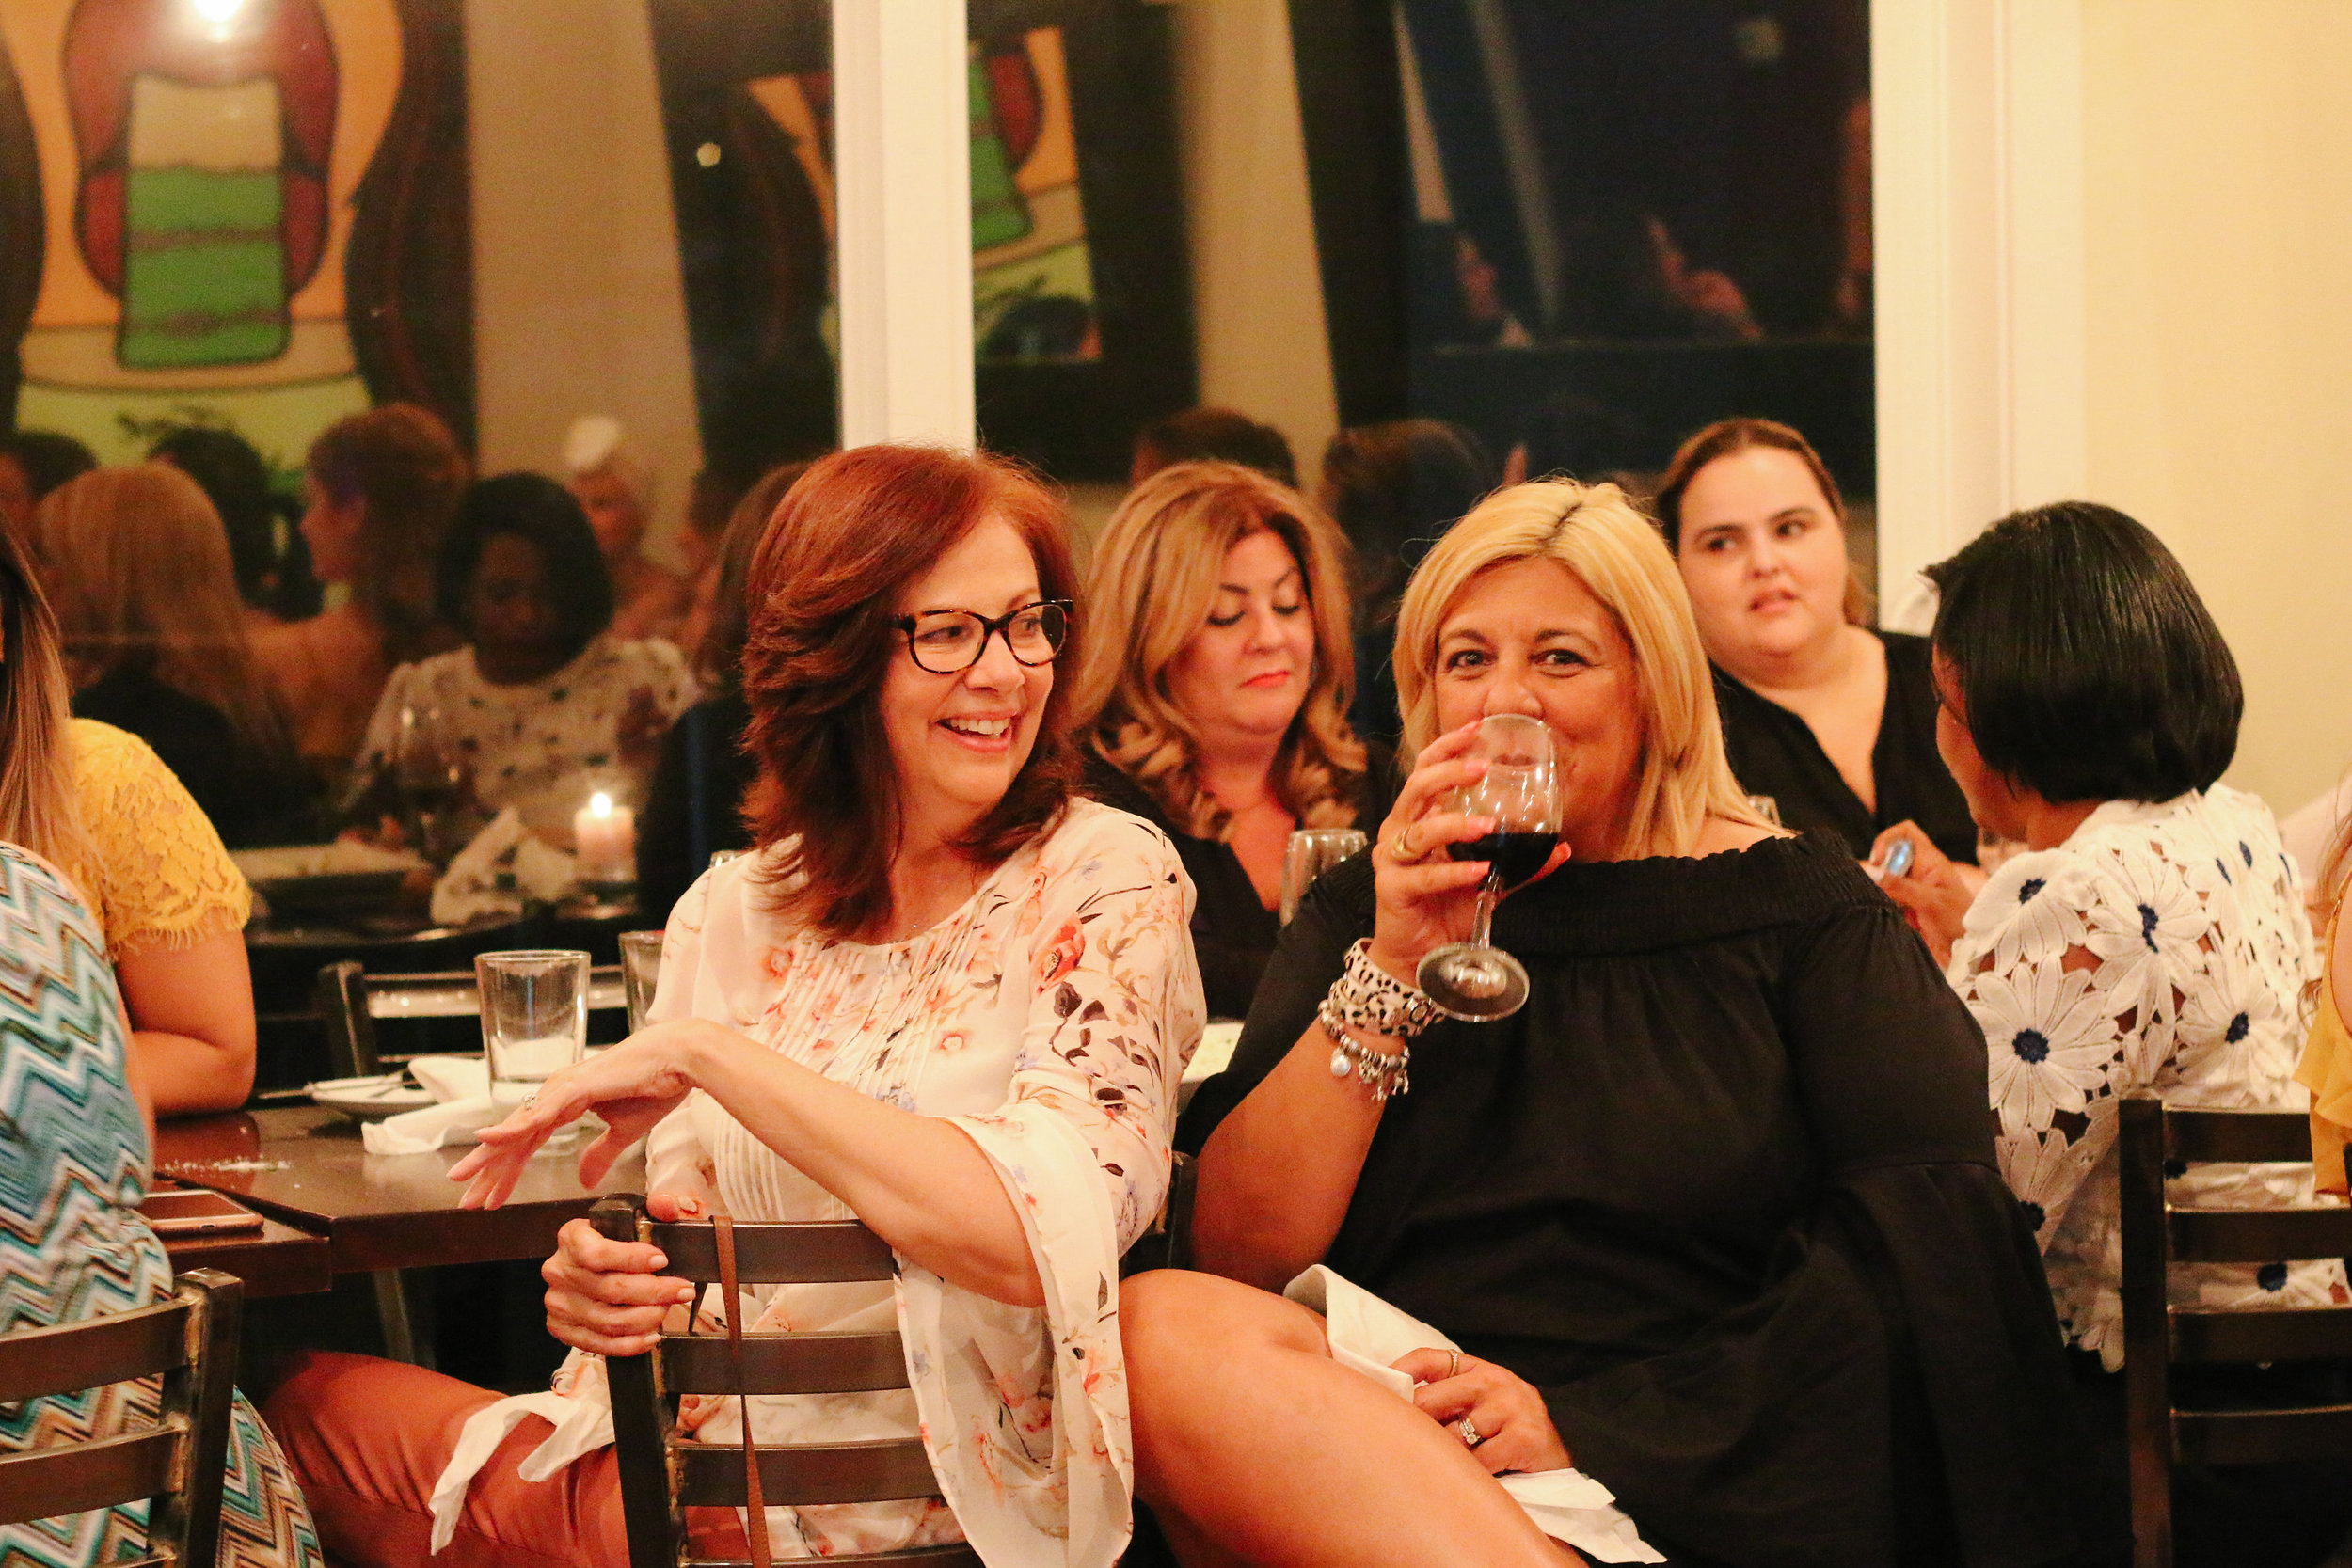 Women Who Wine_Uncorked Conversations_Off The Mile_Miami Wine Events_Wine Tasting Miami_78.jpg